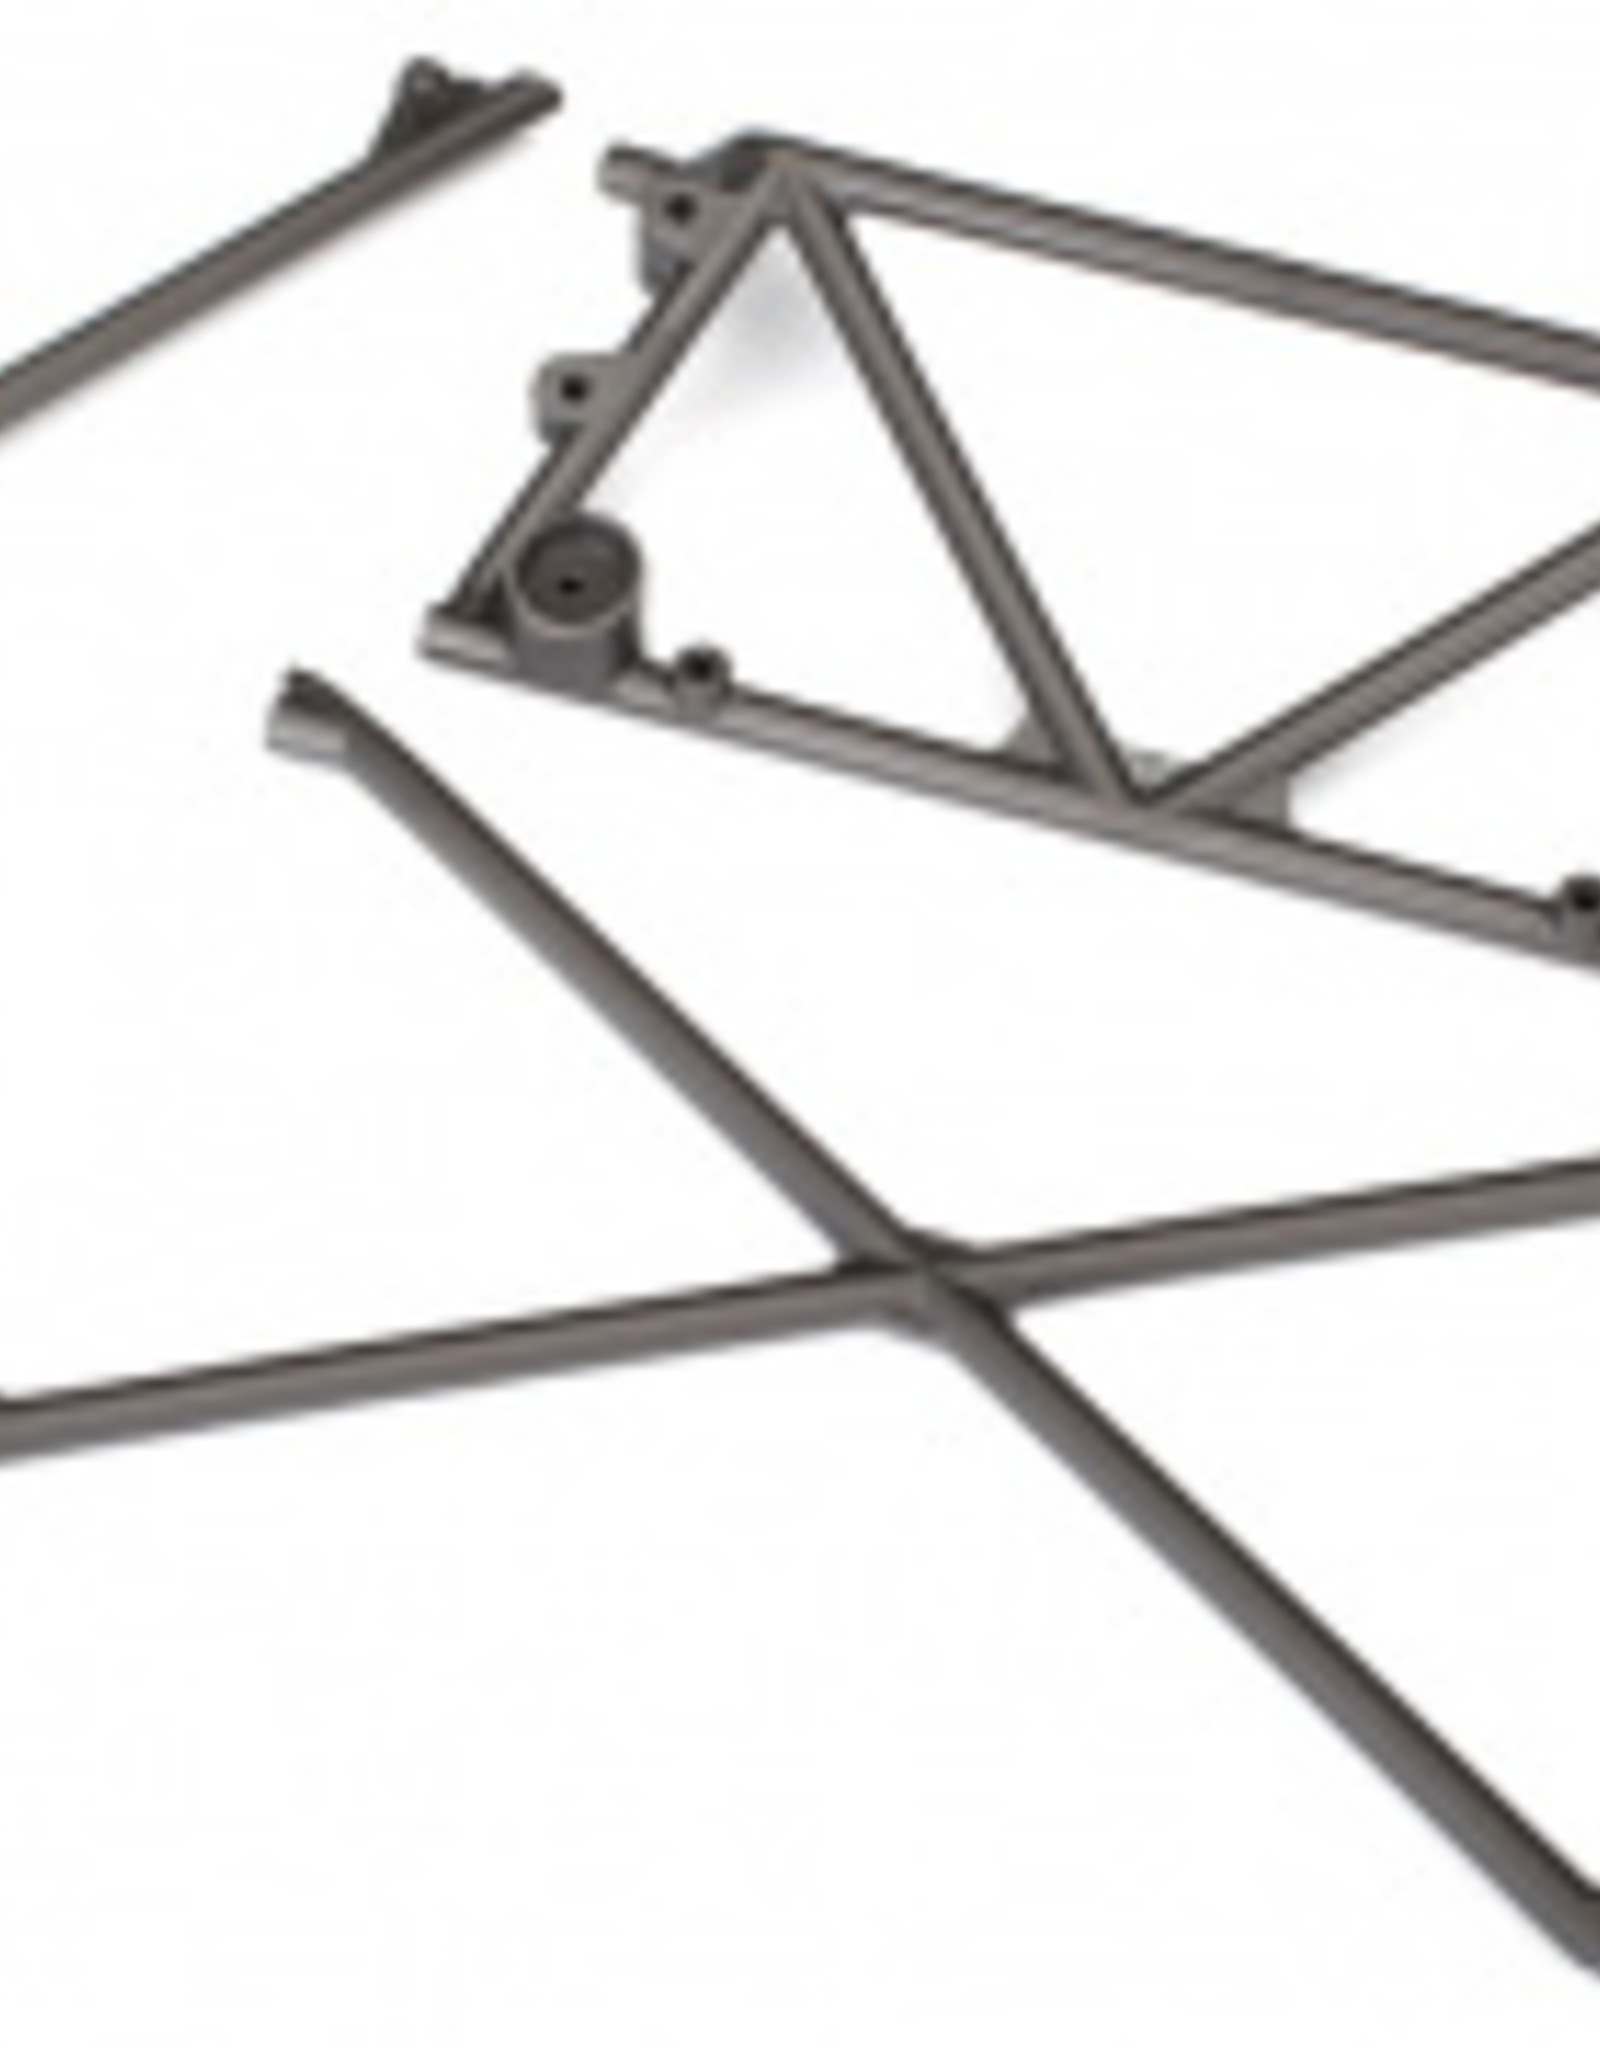 Traxxas Traxxas Unlimited Desert Racer Tube chassis, center support/ cage top/ rear cage support